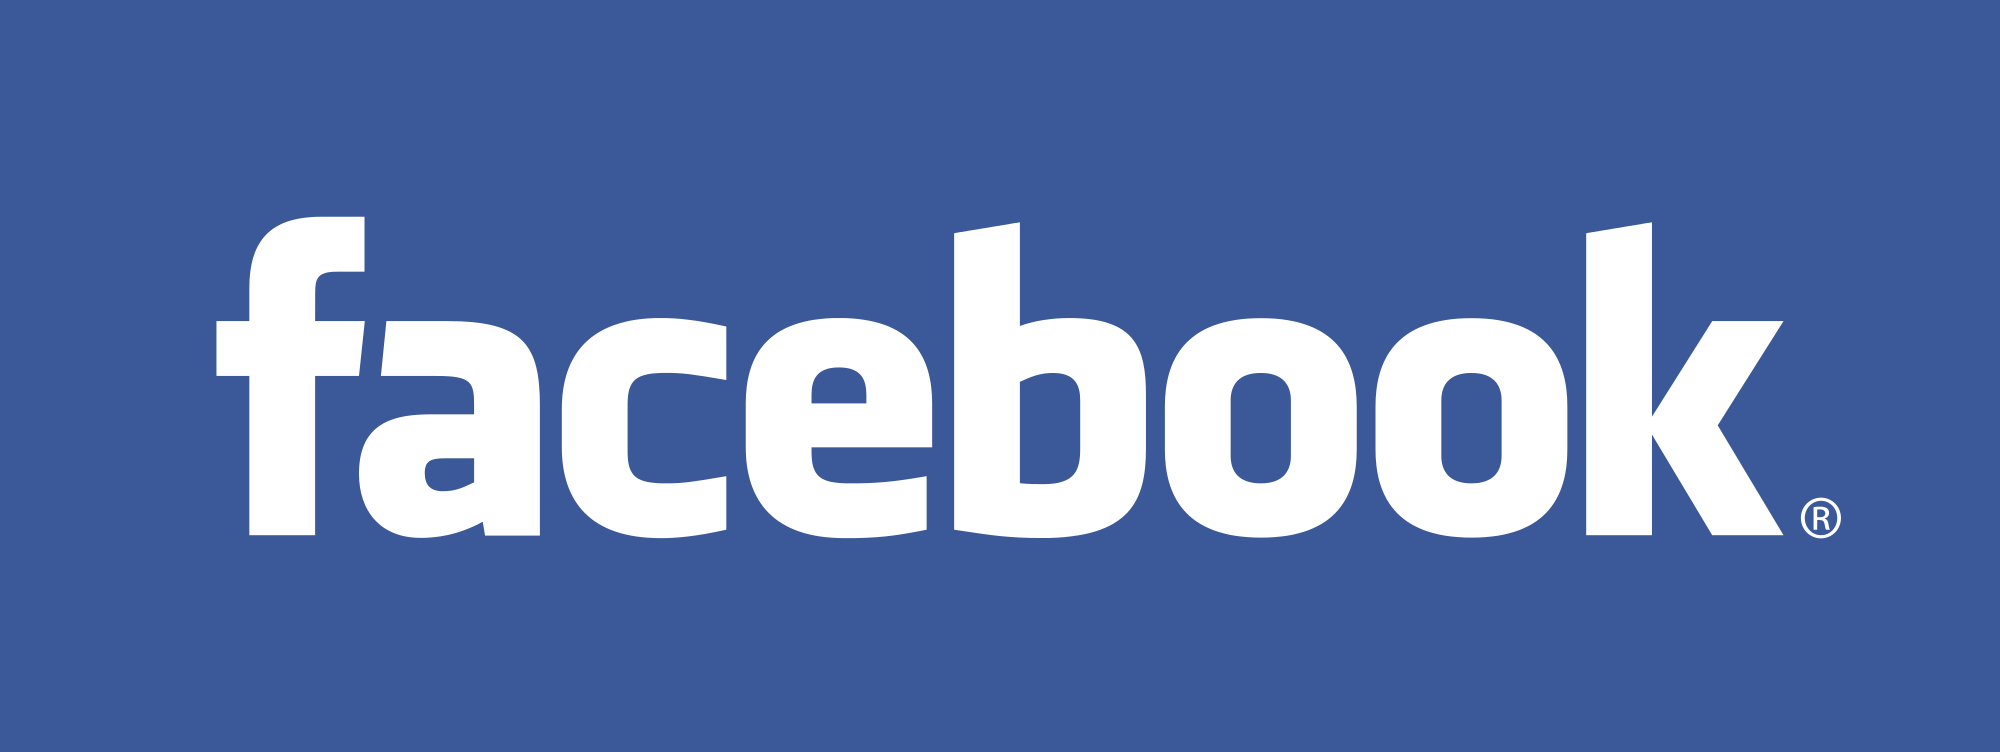 Facebook Logo - File:Facebook.svg - Wikimedia Commons